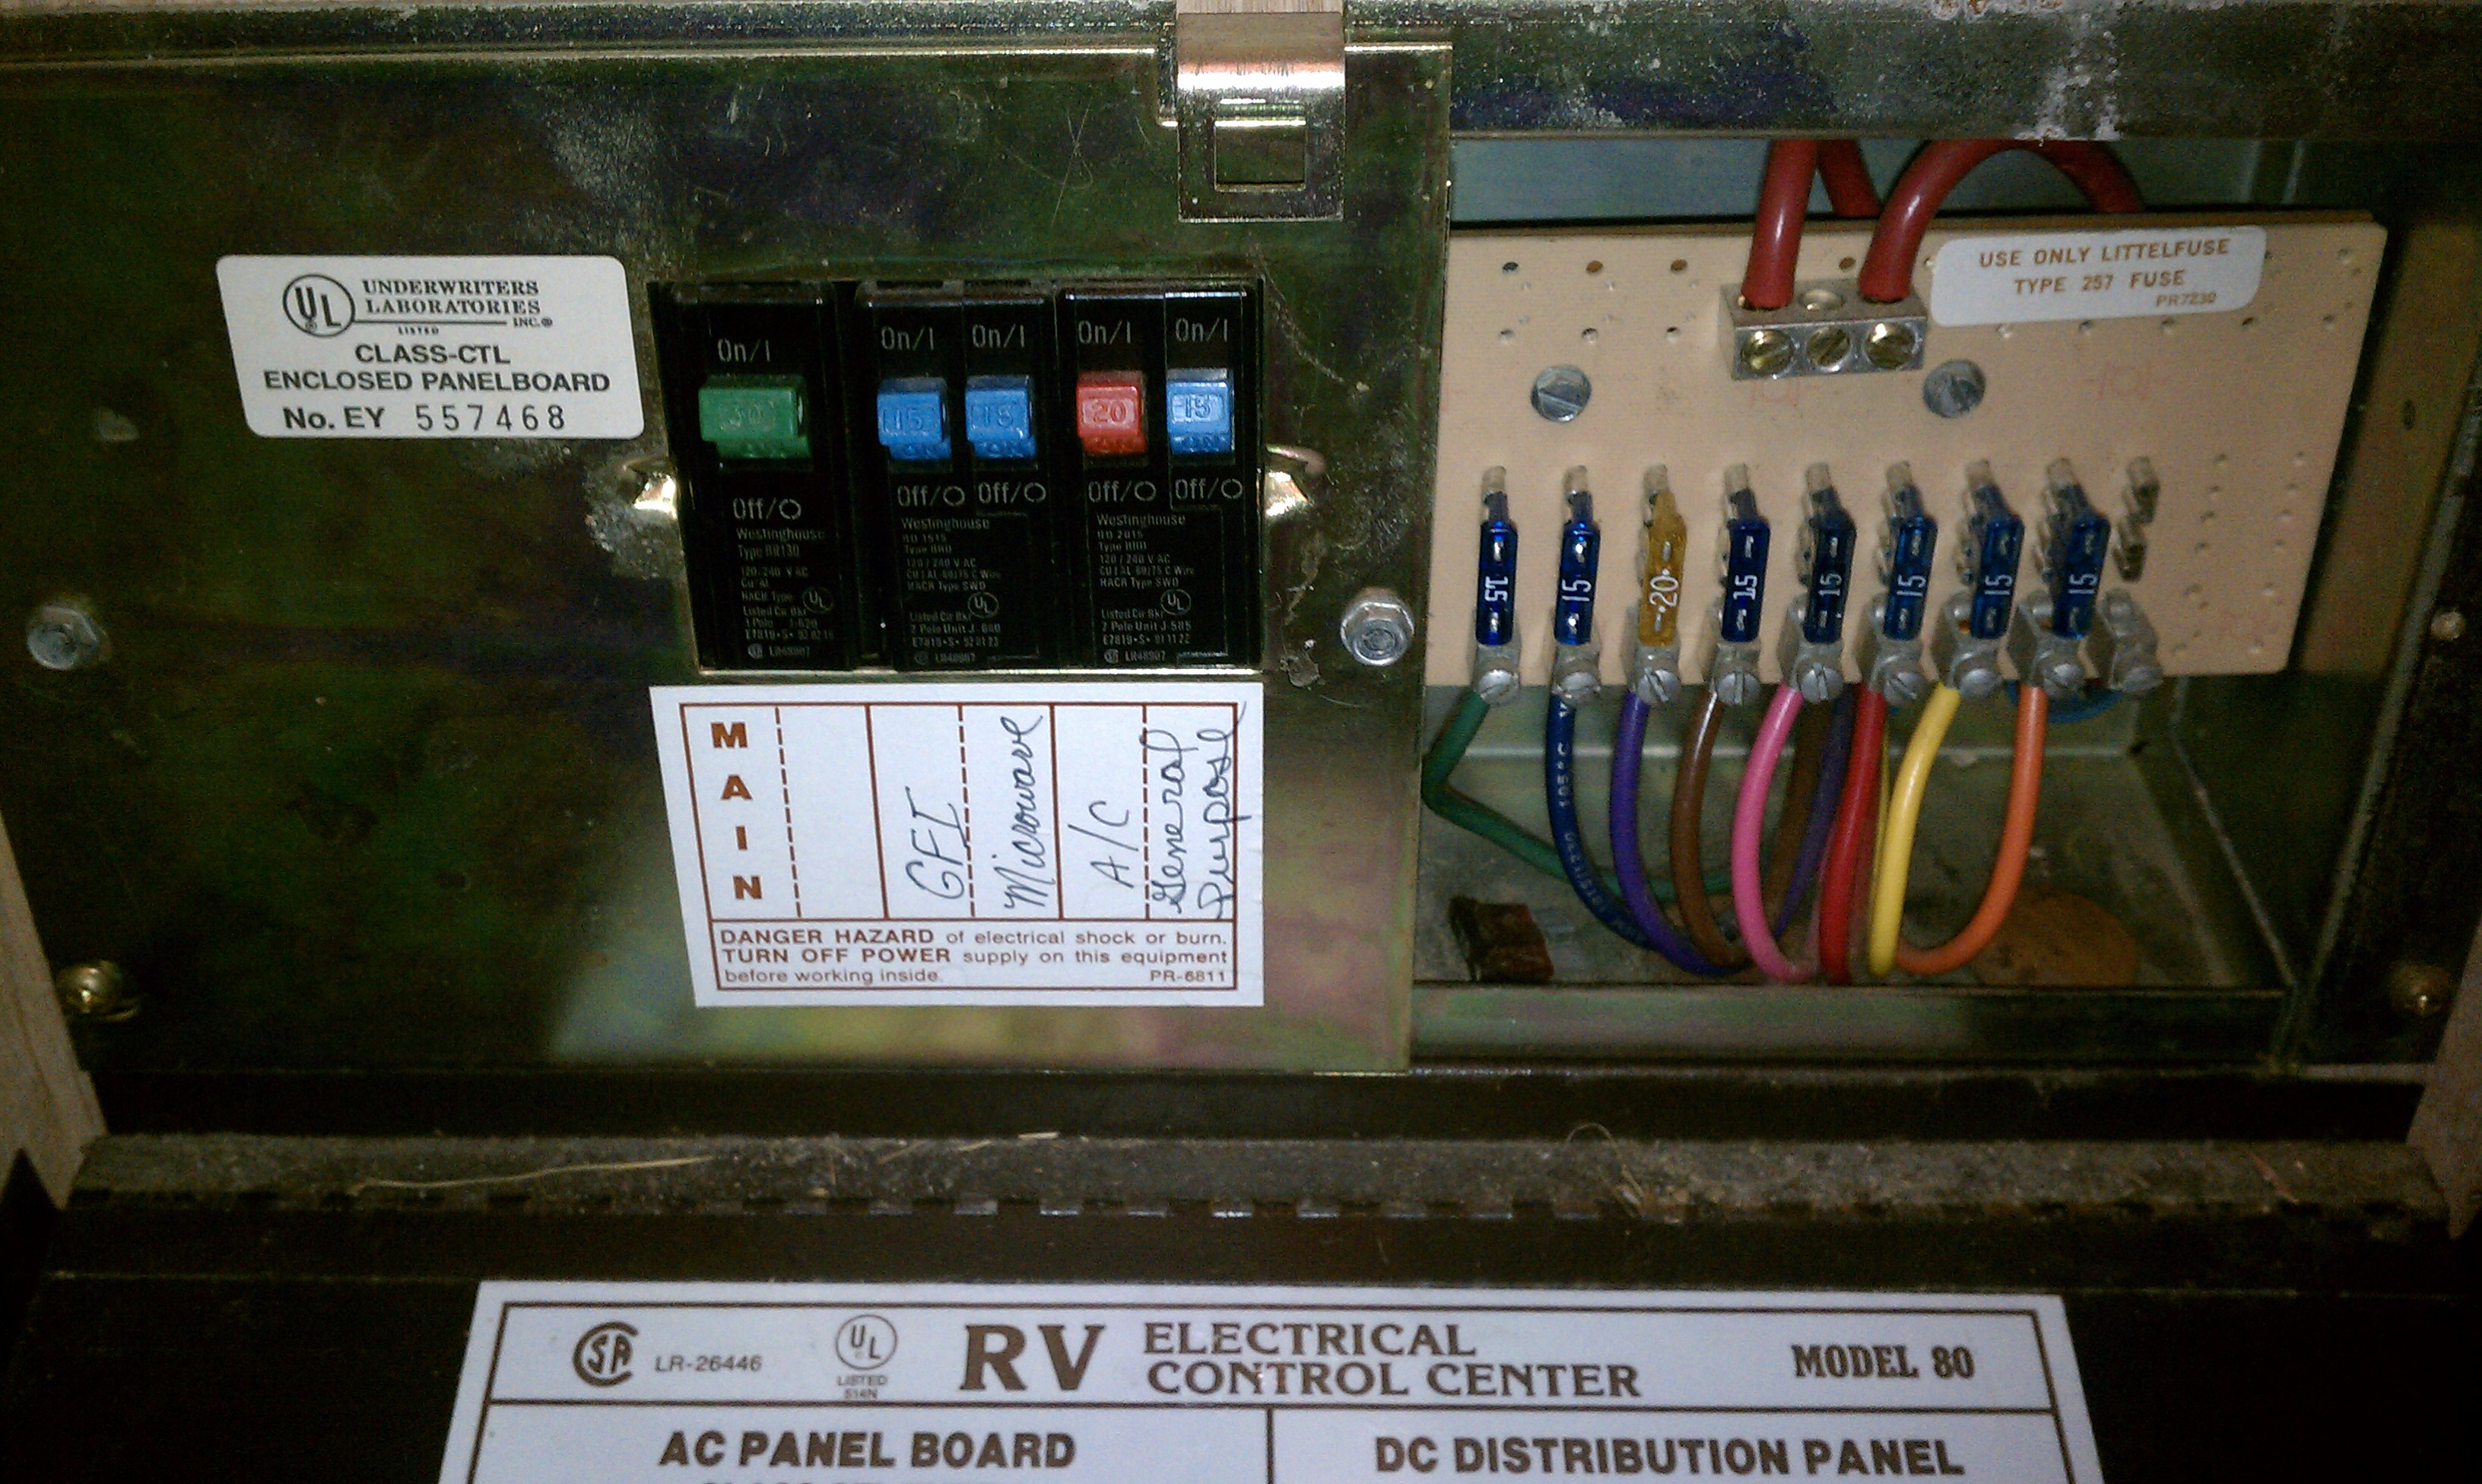 House Fuse Panel Diagram Wiring Library Electric Boxes Rv Box Schemes Converter Charger 12 Volt